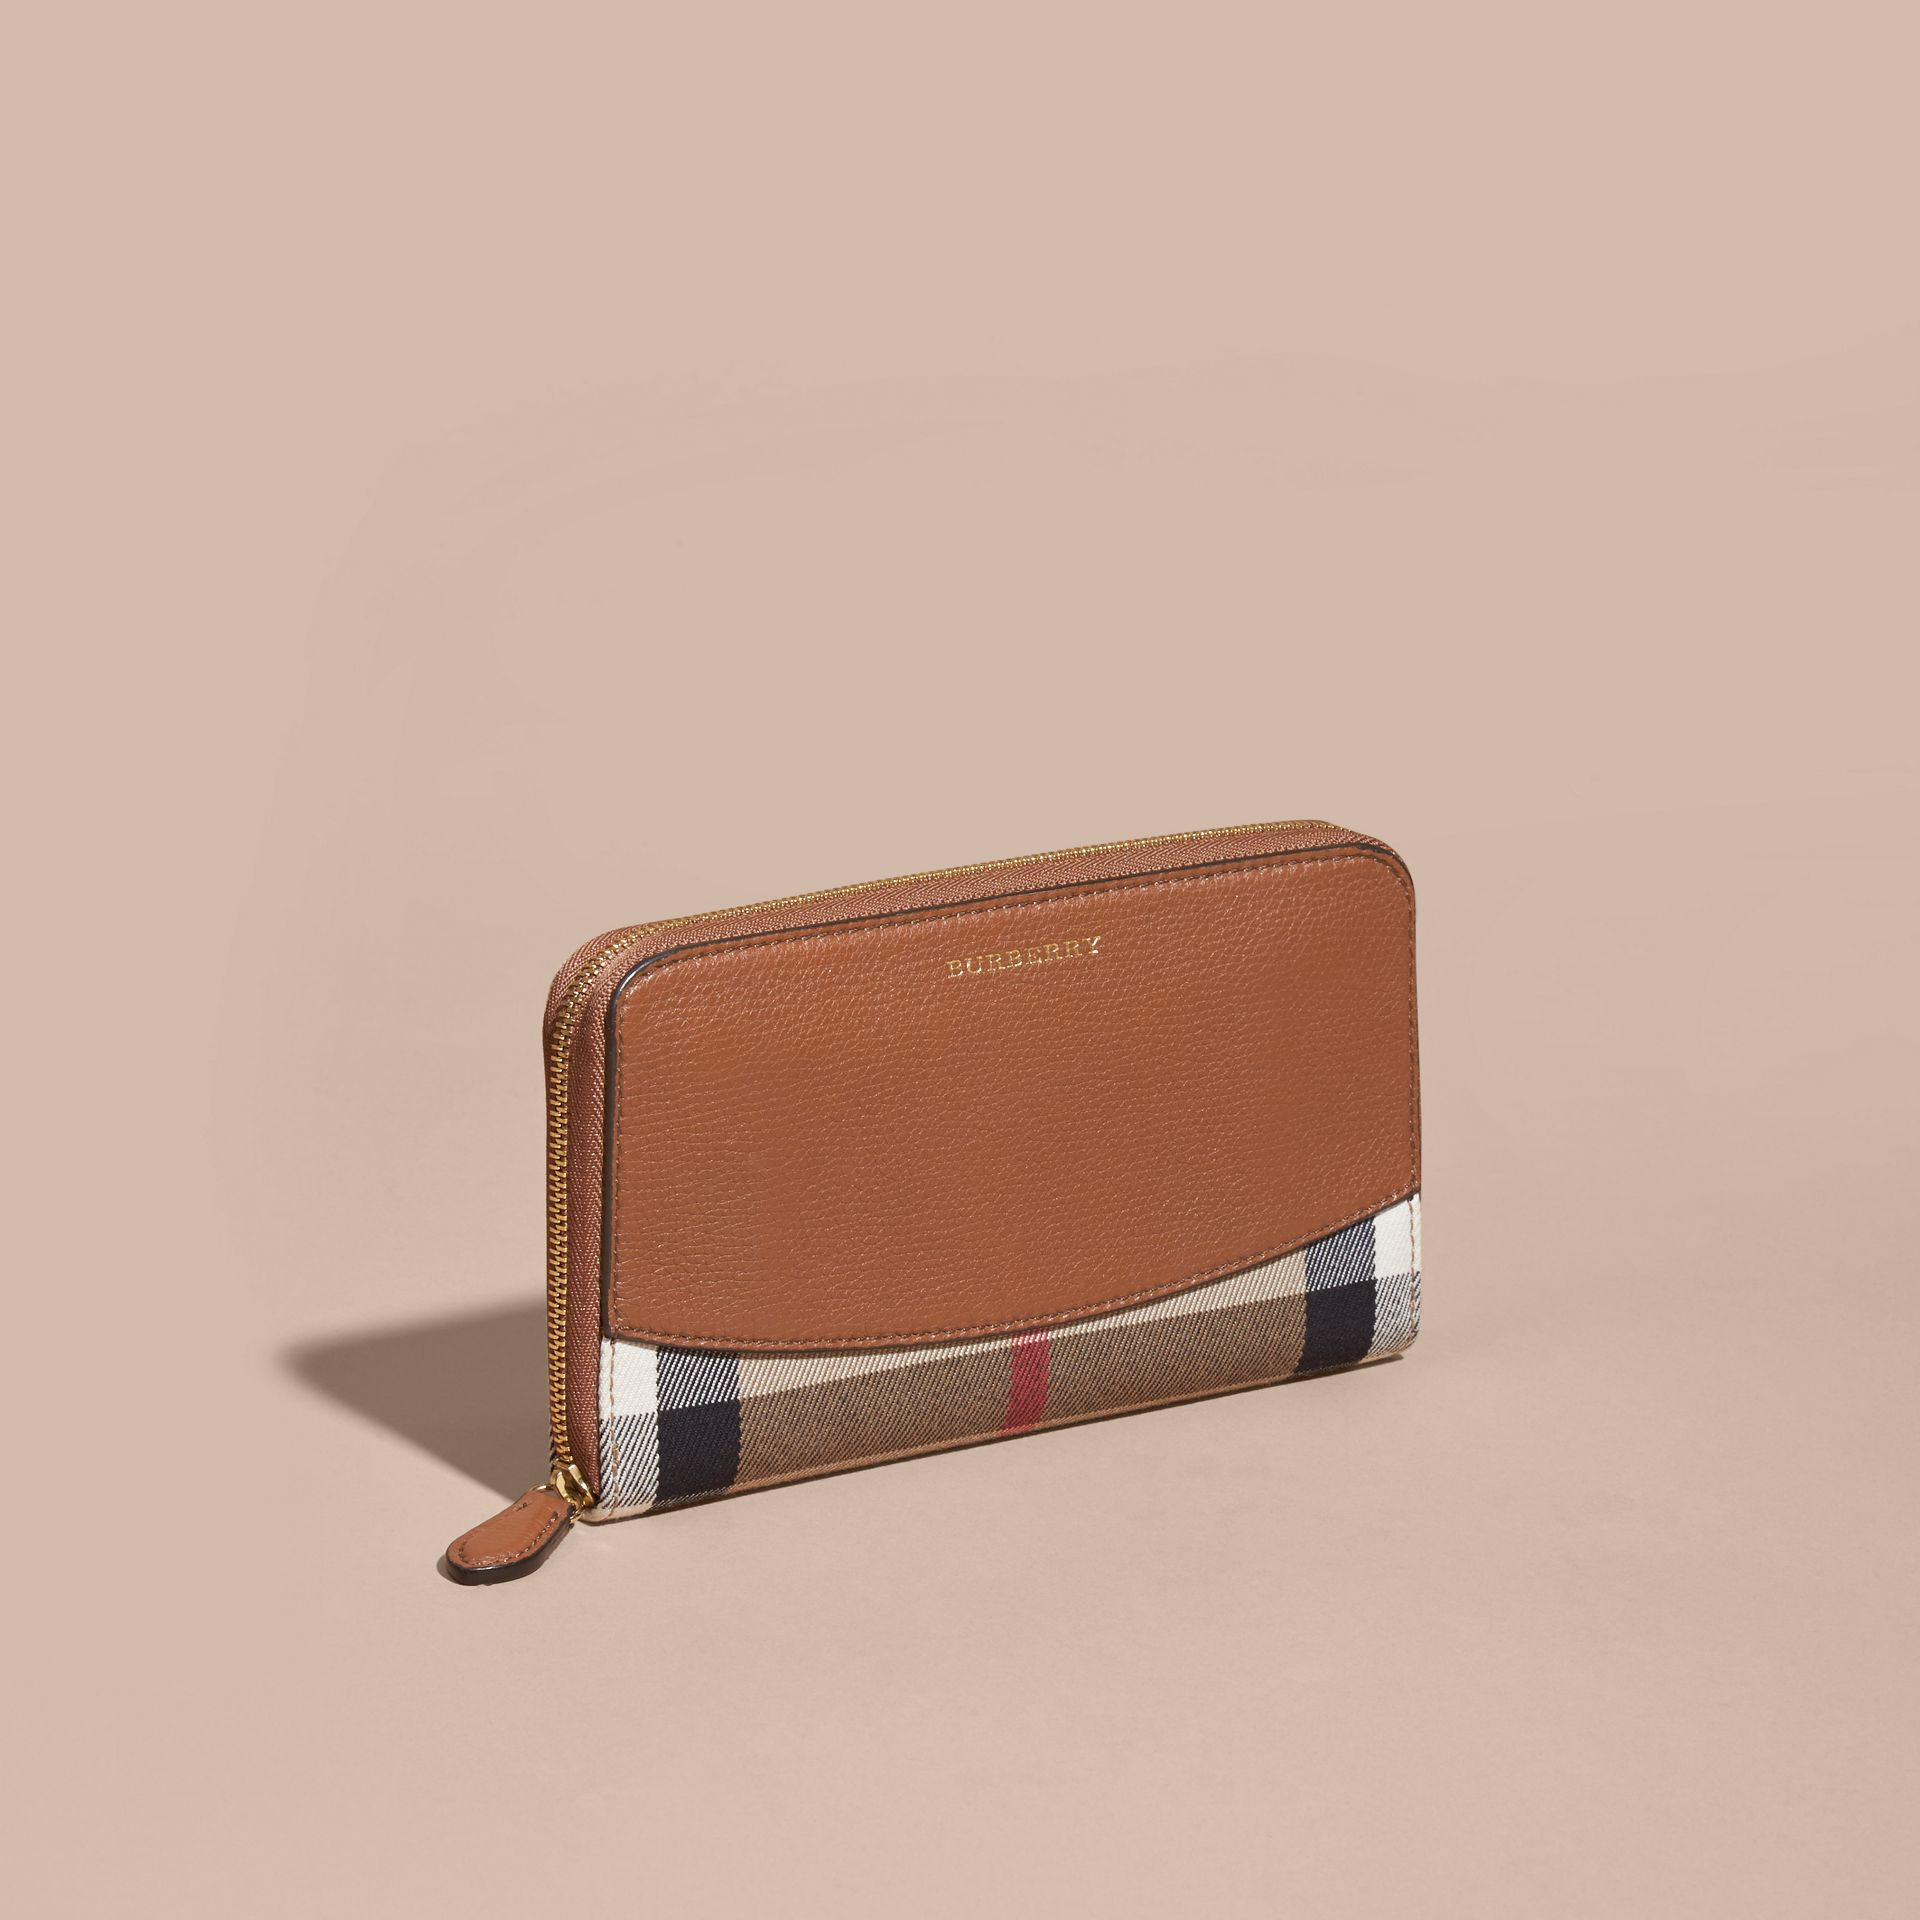 House Check and Leather Ziparound Wallet in Brown Ochre - Women | Burberry - gallery image 6